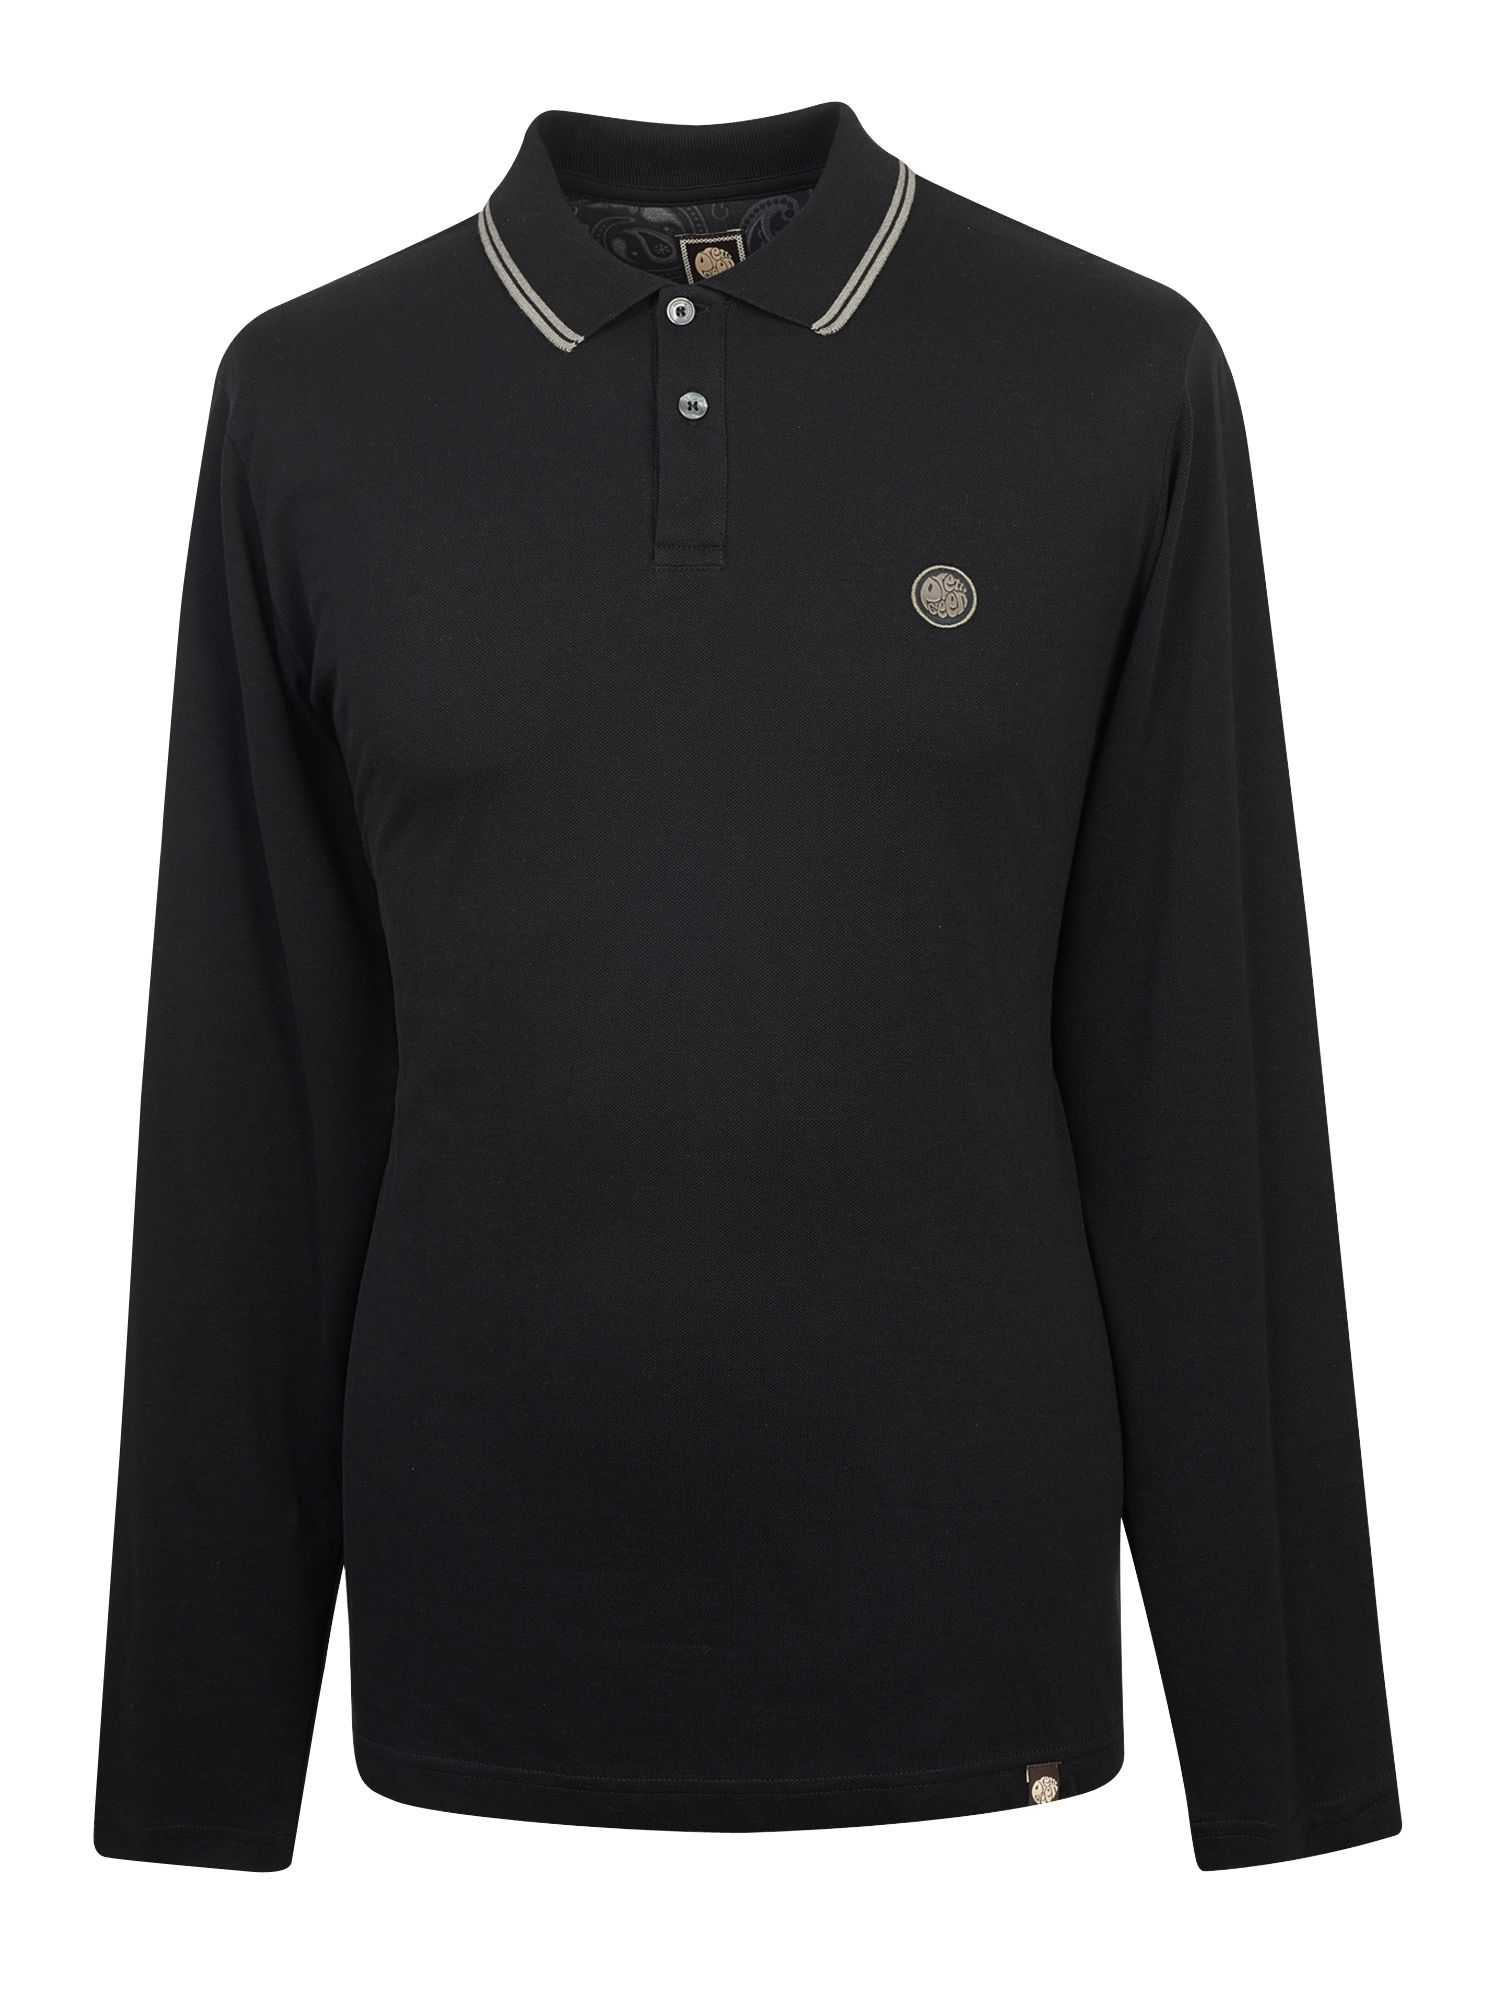 Men's Pretty Green Long Sleeve Tipped Pique Polo Shirt, Black